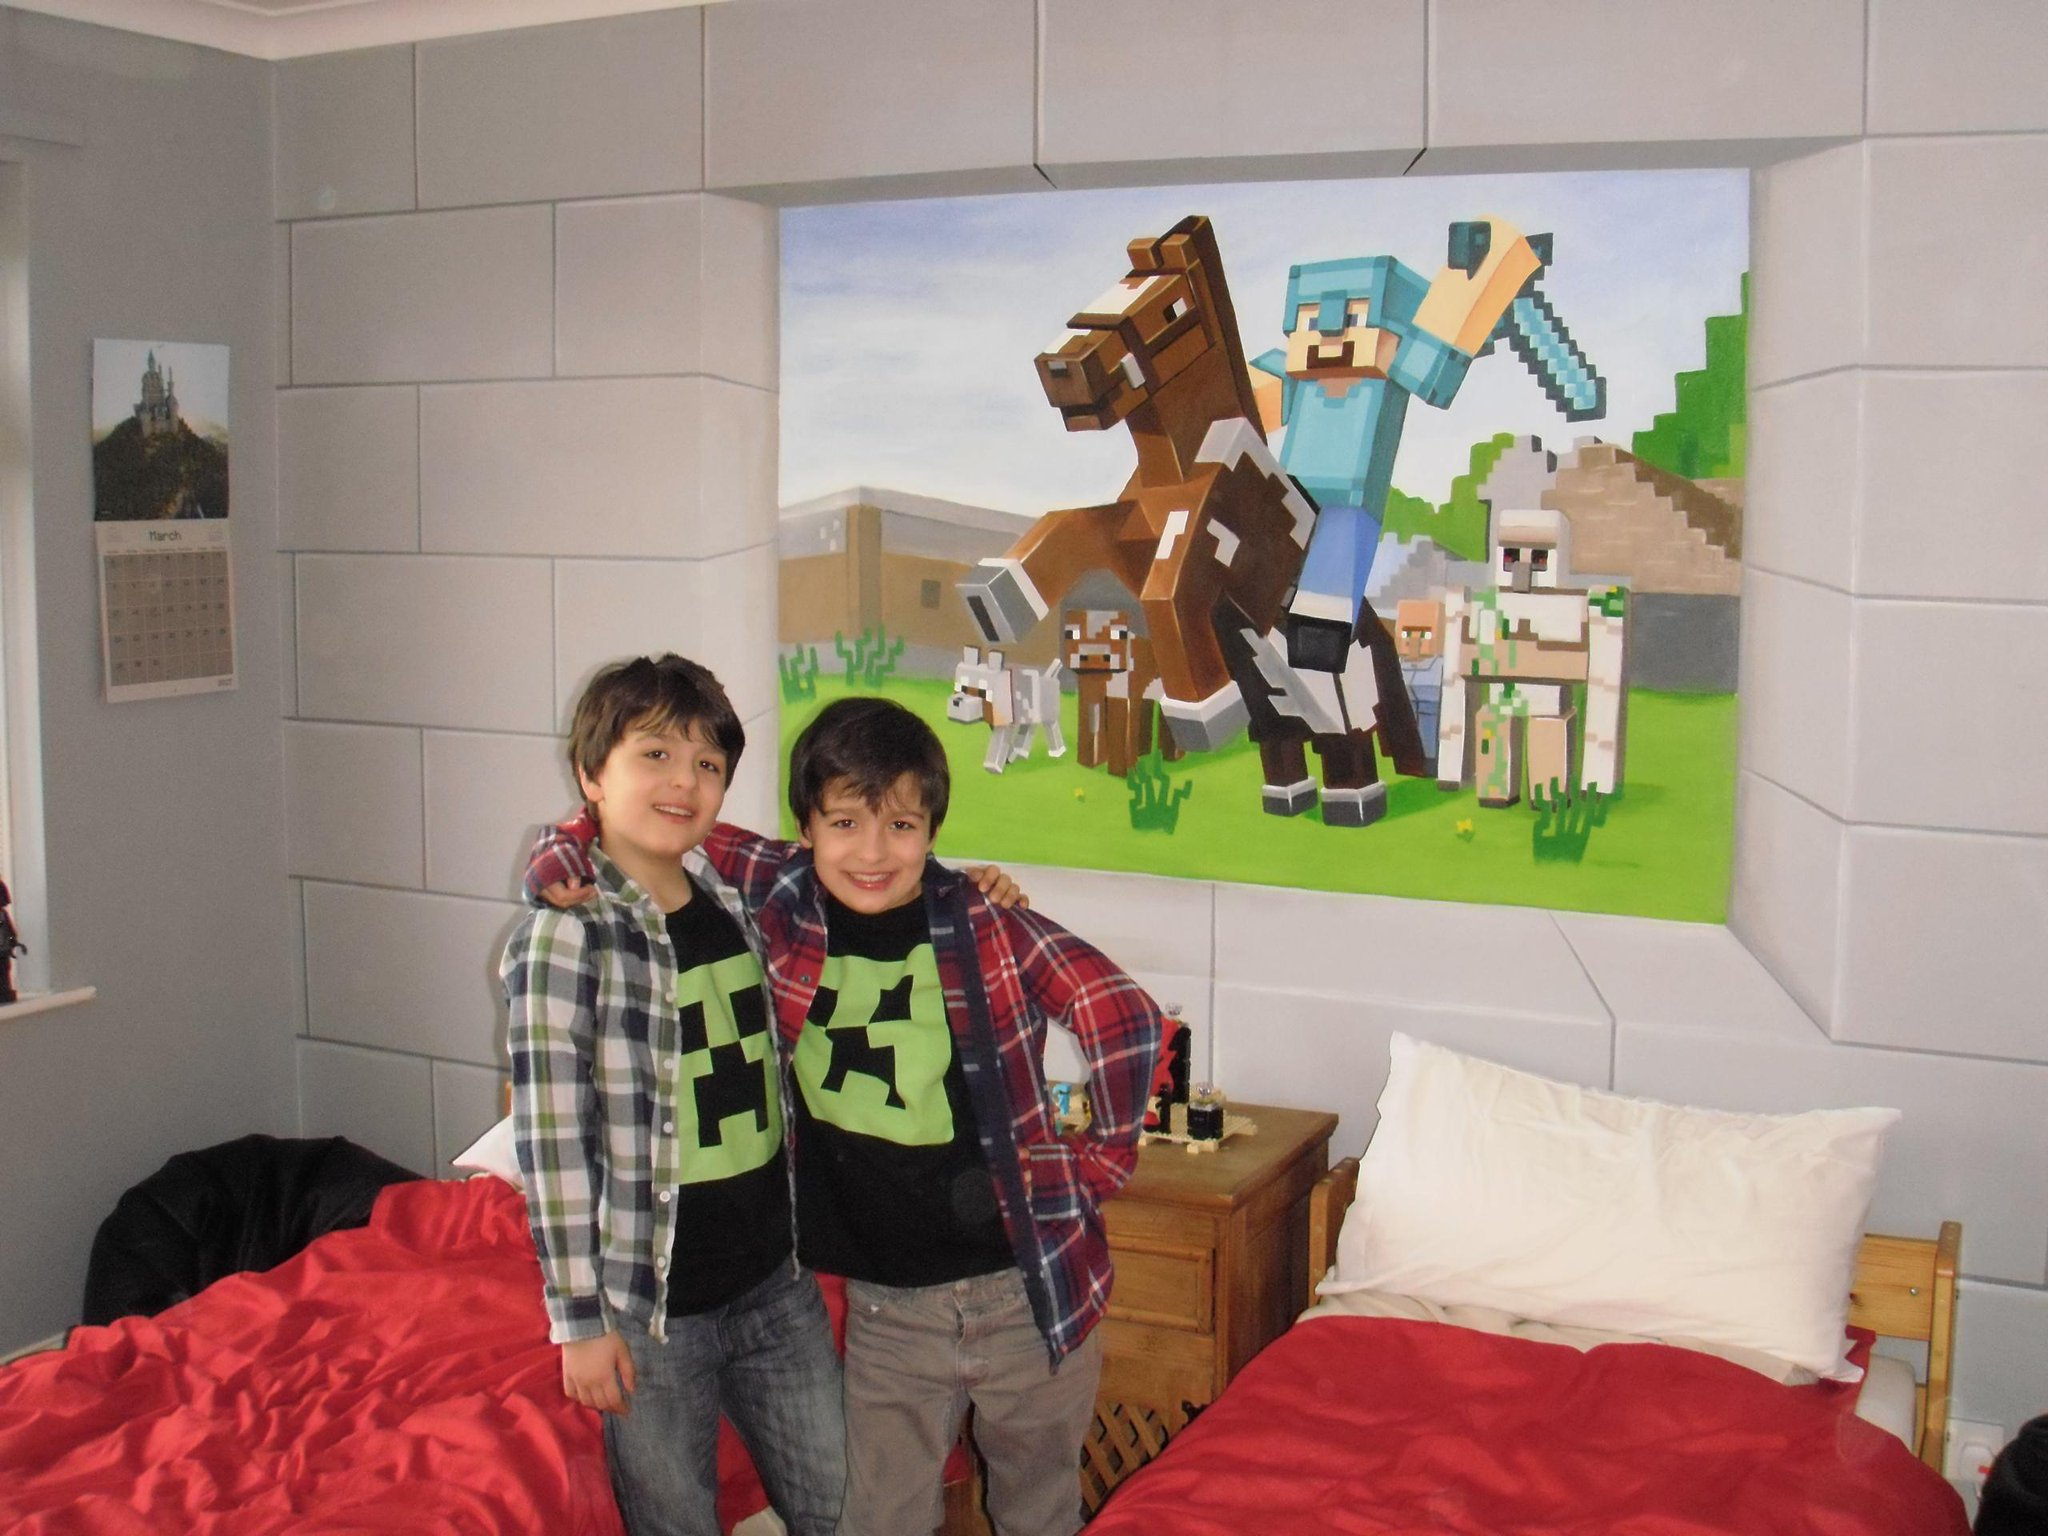 The Boys Enjoying Their New Custom Murals Minecraft Bedroom